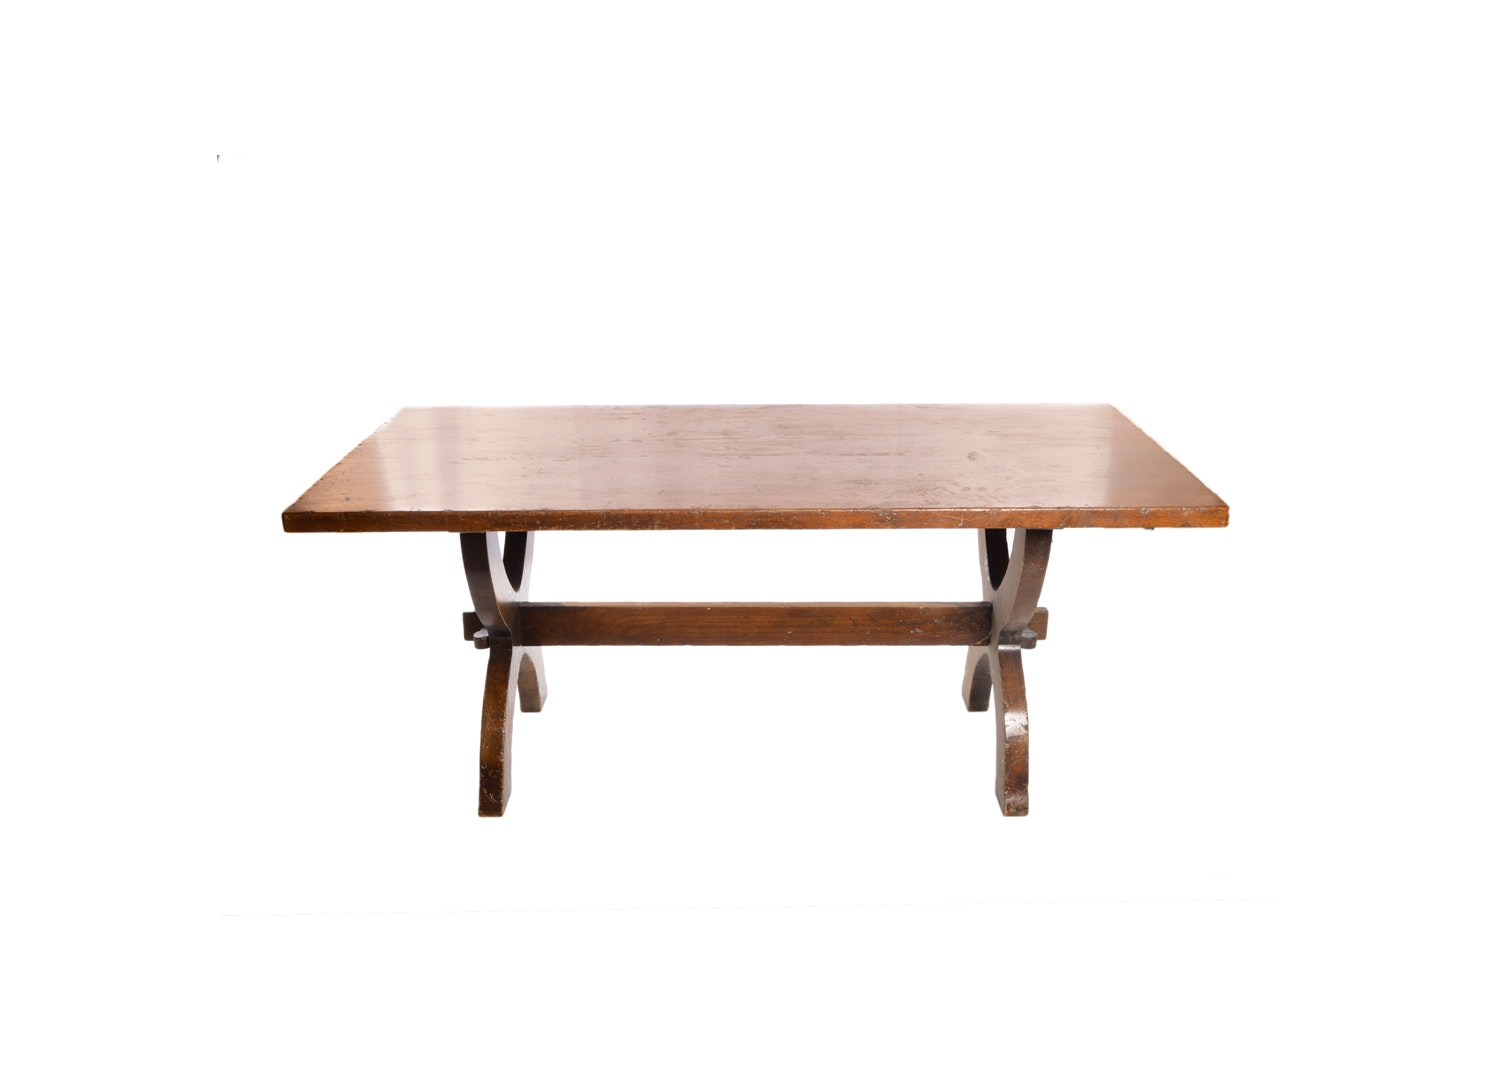 Stained Oak Dining Table, 20th Century